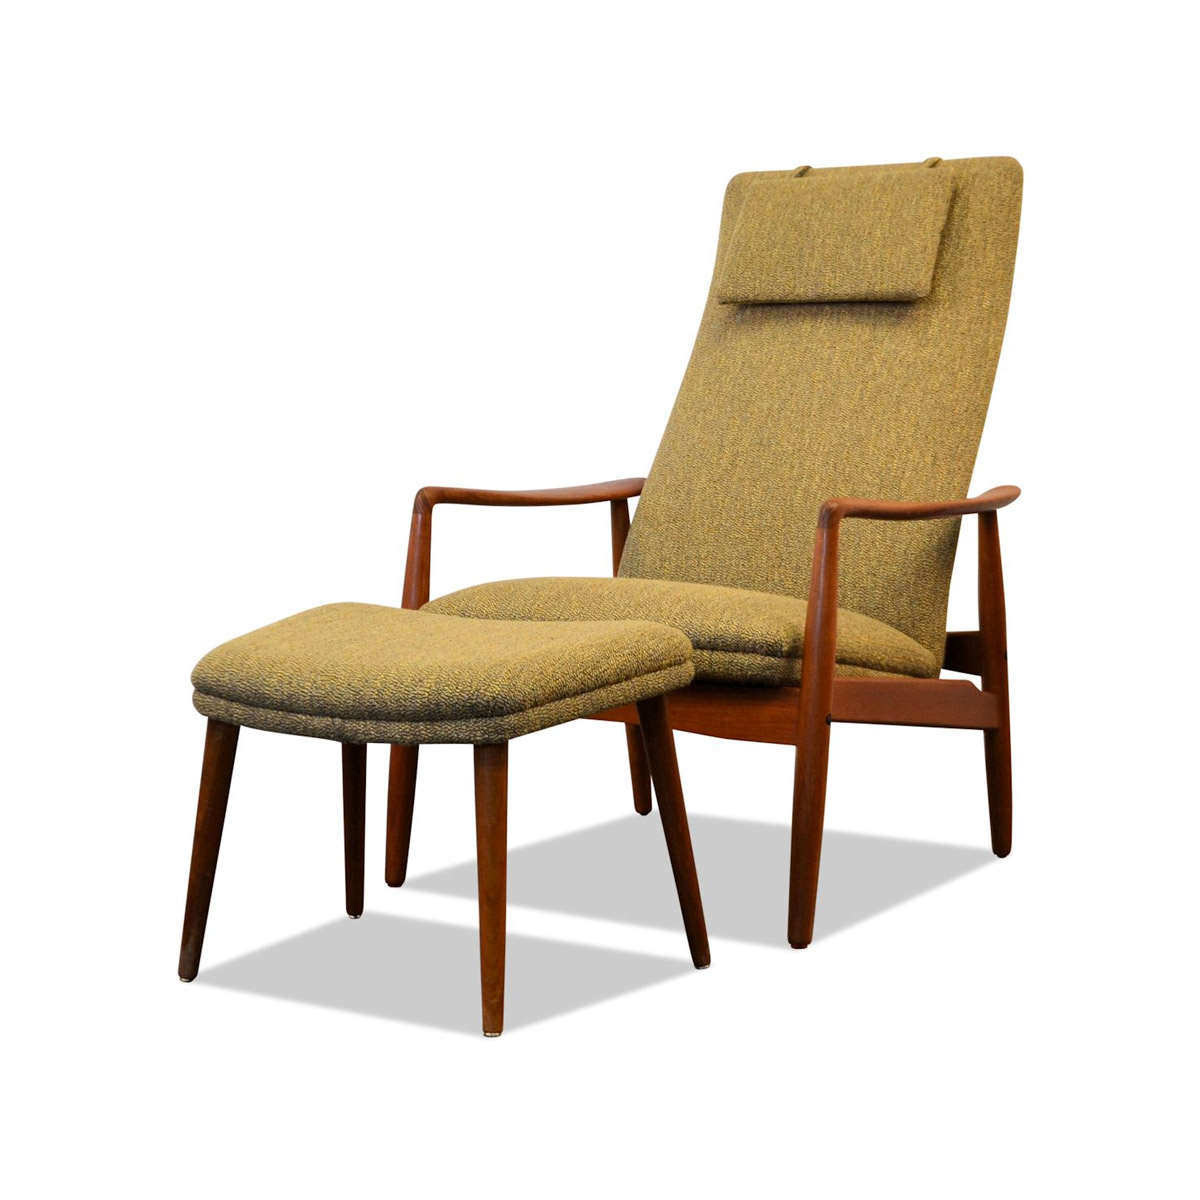 Vintage Søren Ladefoged Easy Chair & Ottoman